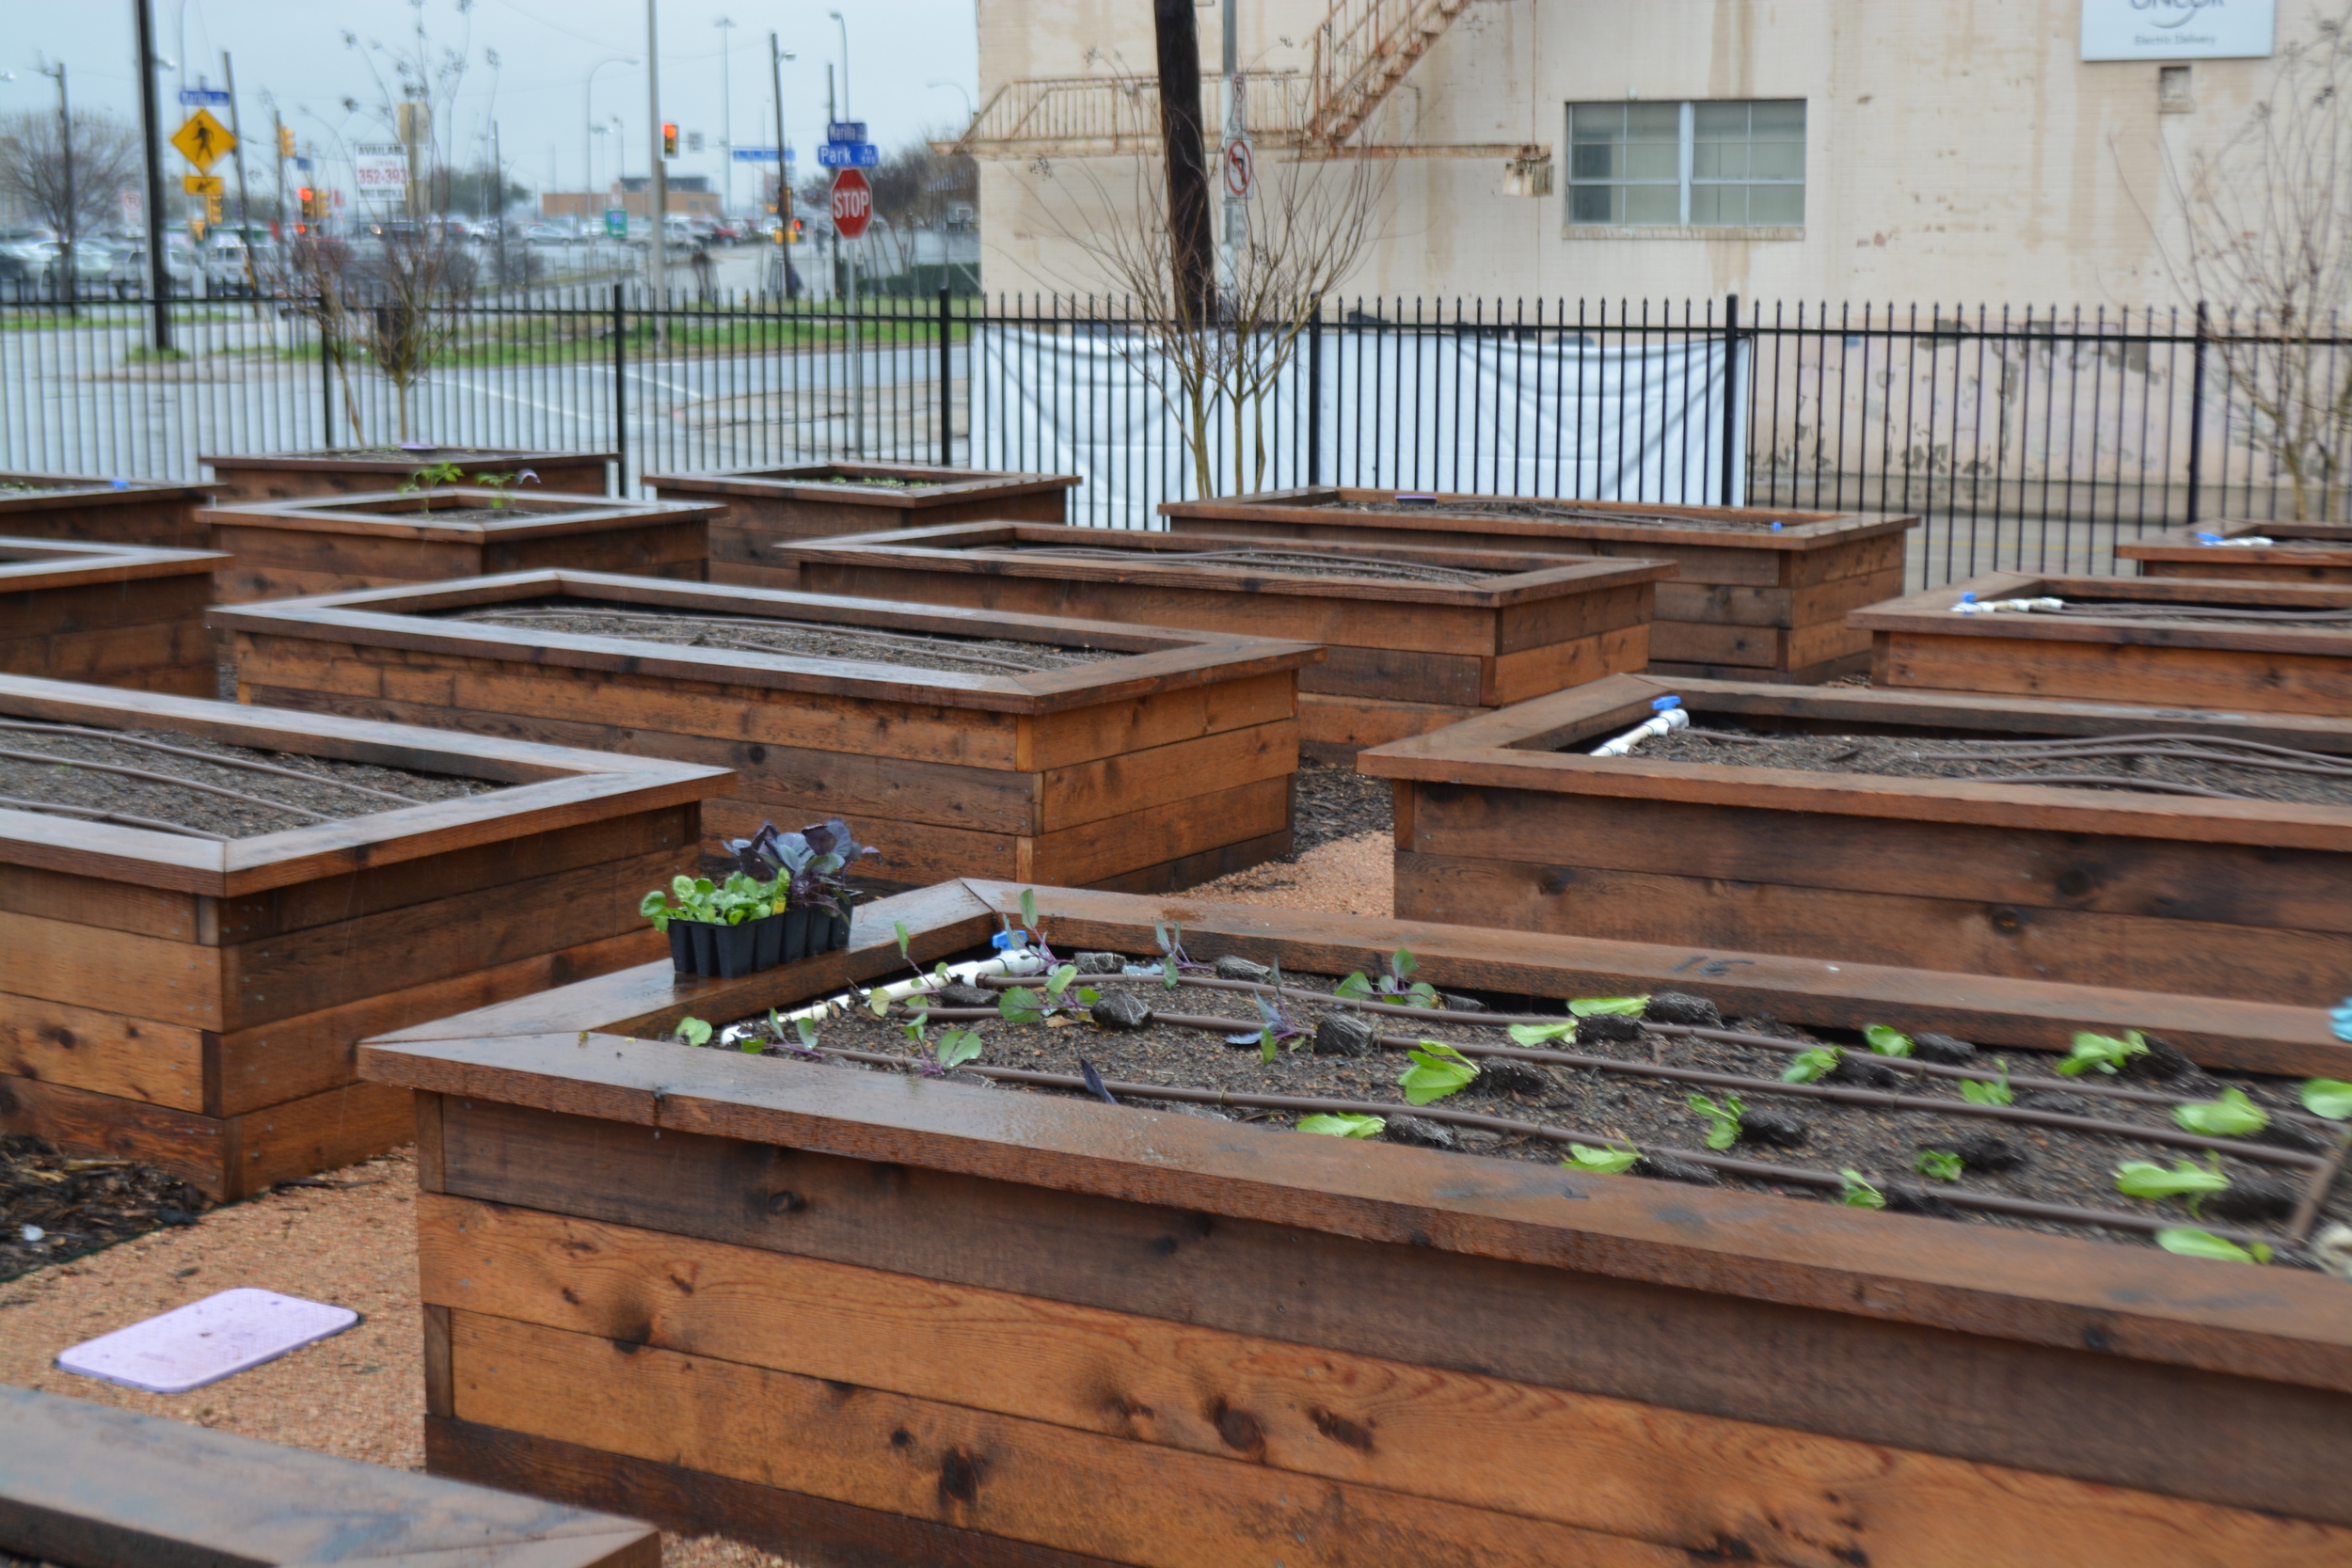 The community garden raised beds.